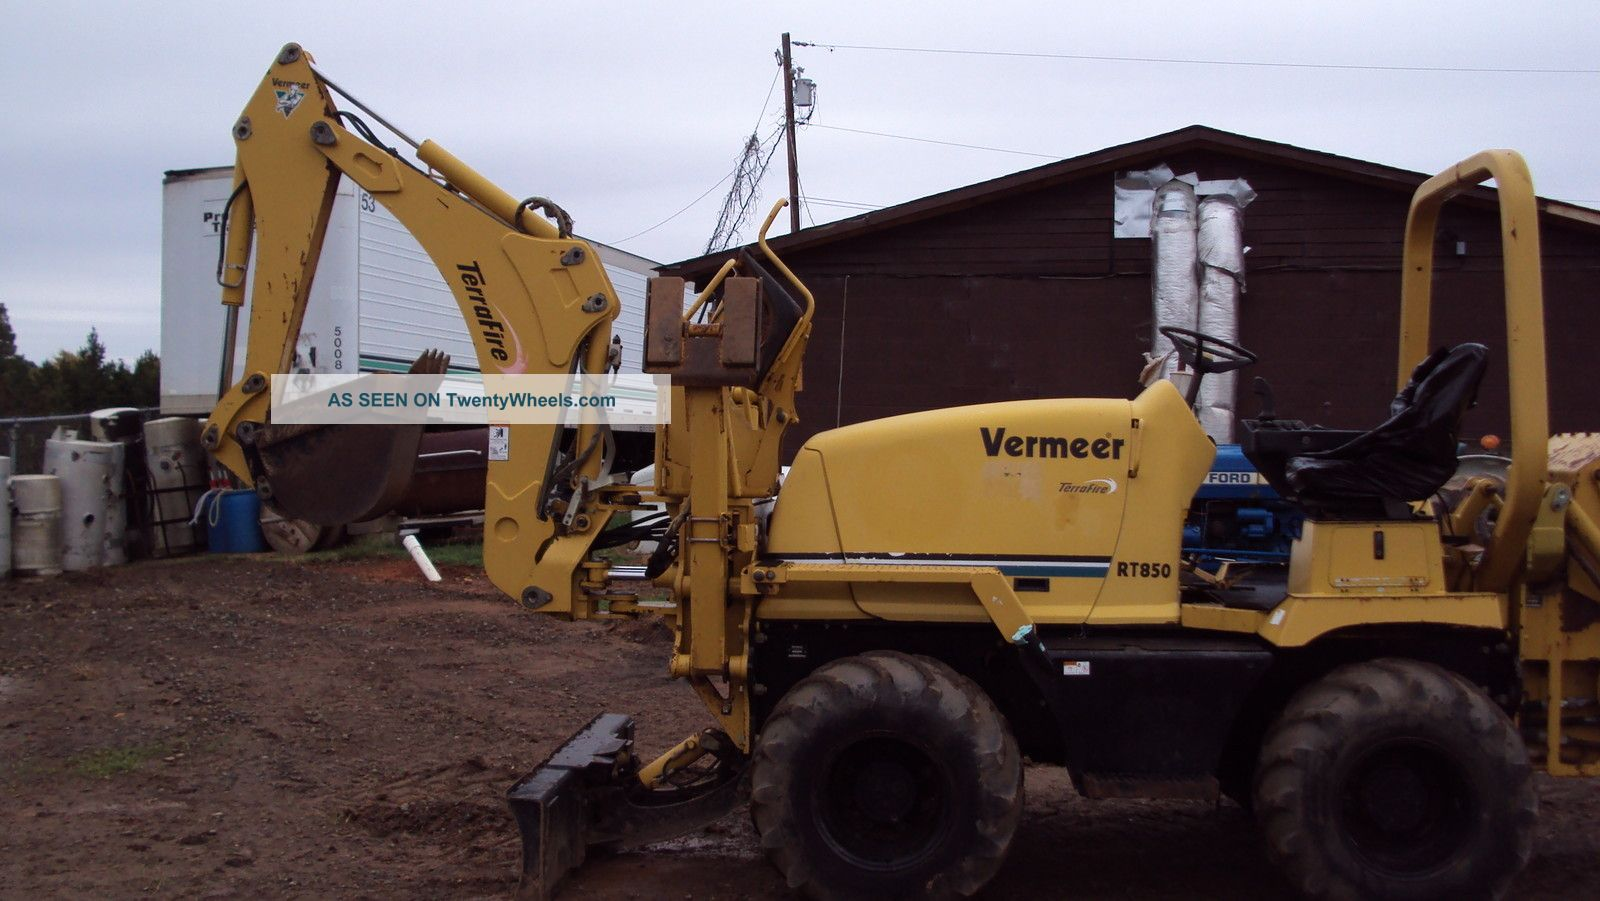 2001 Vermeer Rt850 Trencher Trenchers - Riding photo